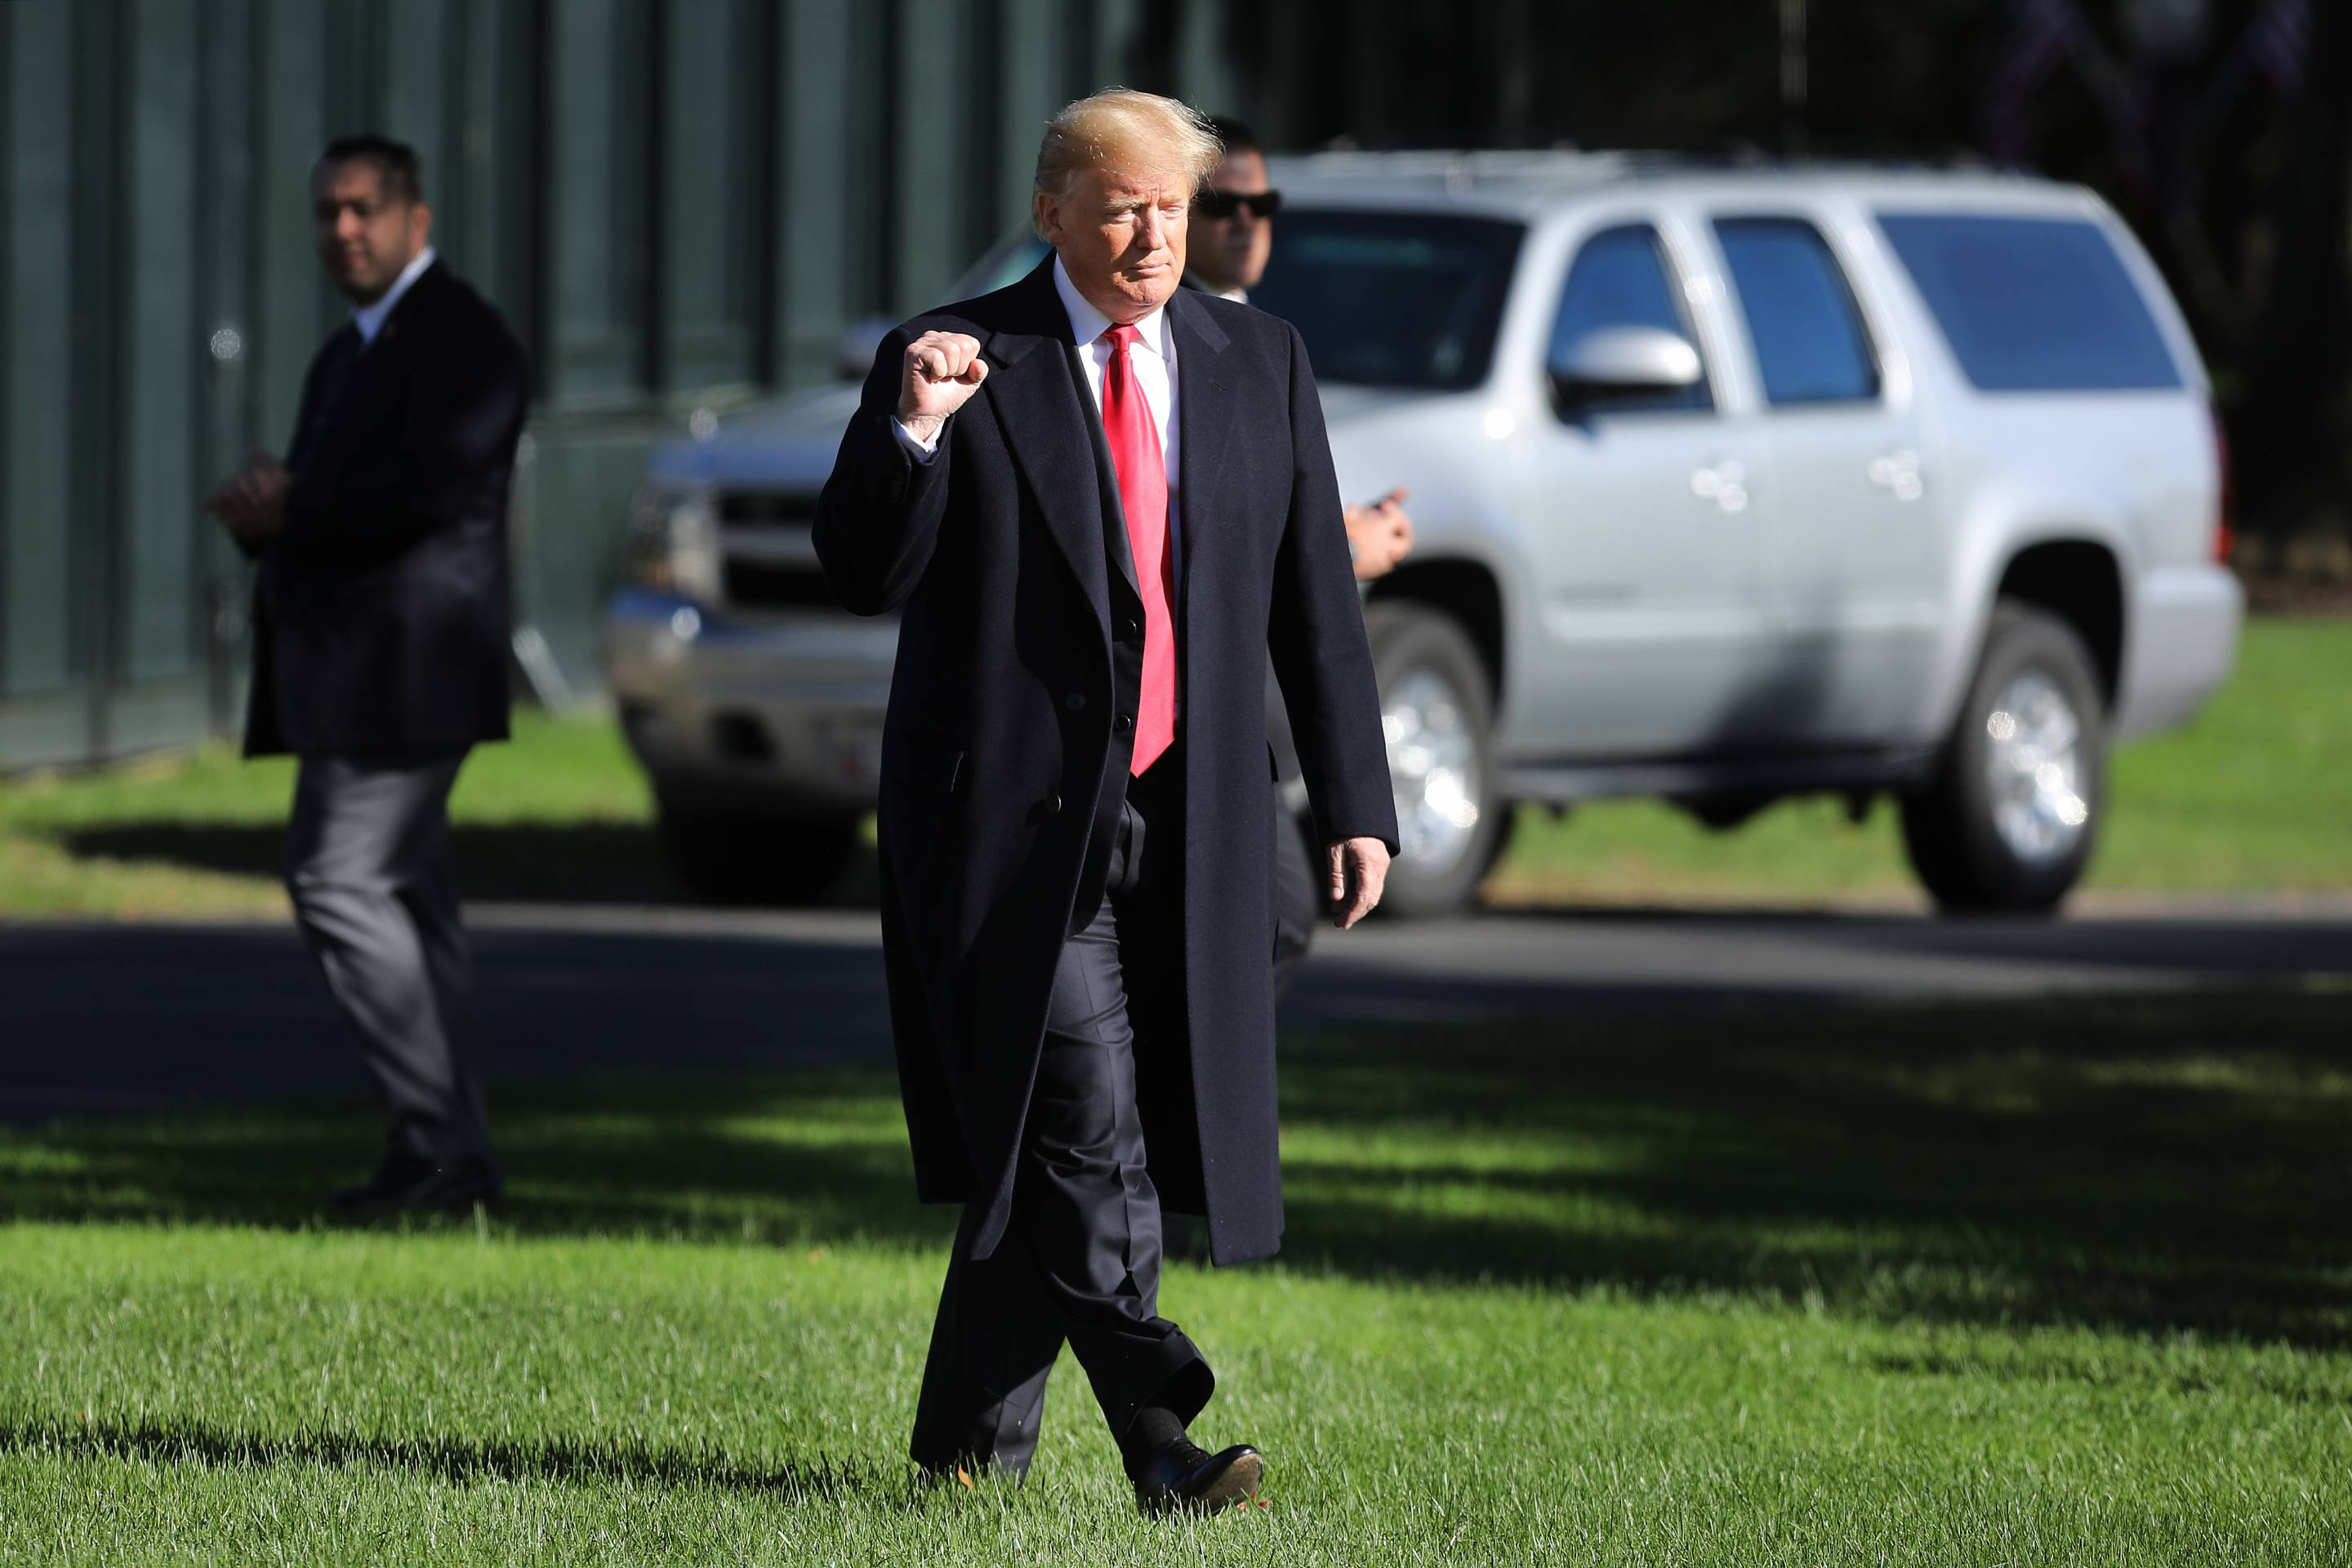 President Trump Departs The White House En Route To Rally In Montana